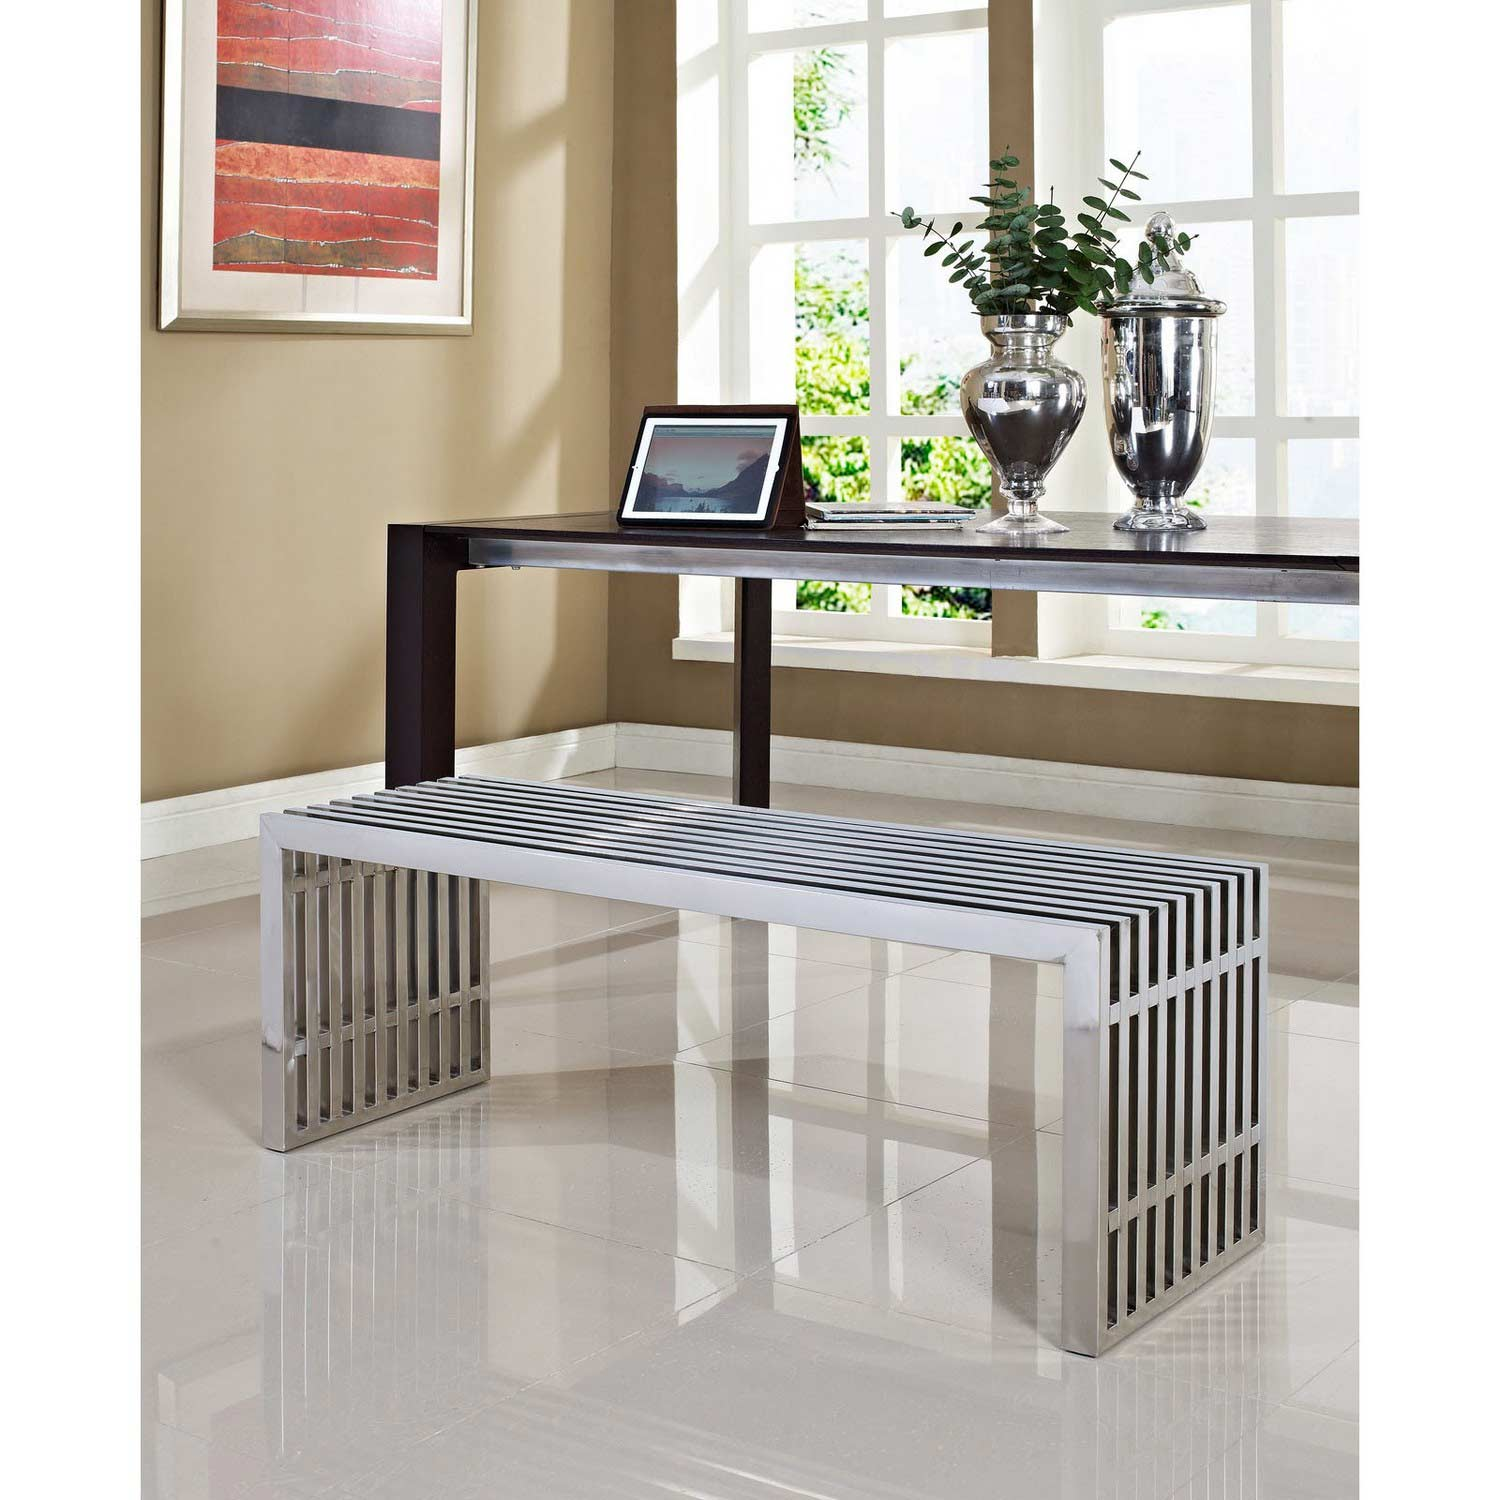 Modway Gridiron Large Bench - Silver